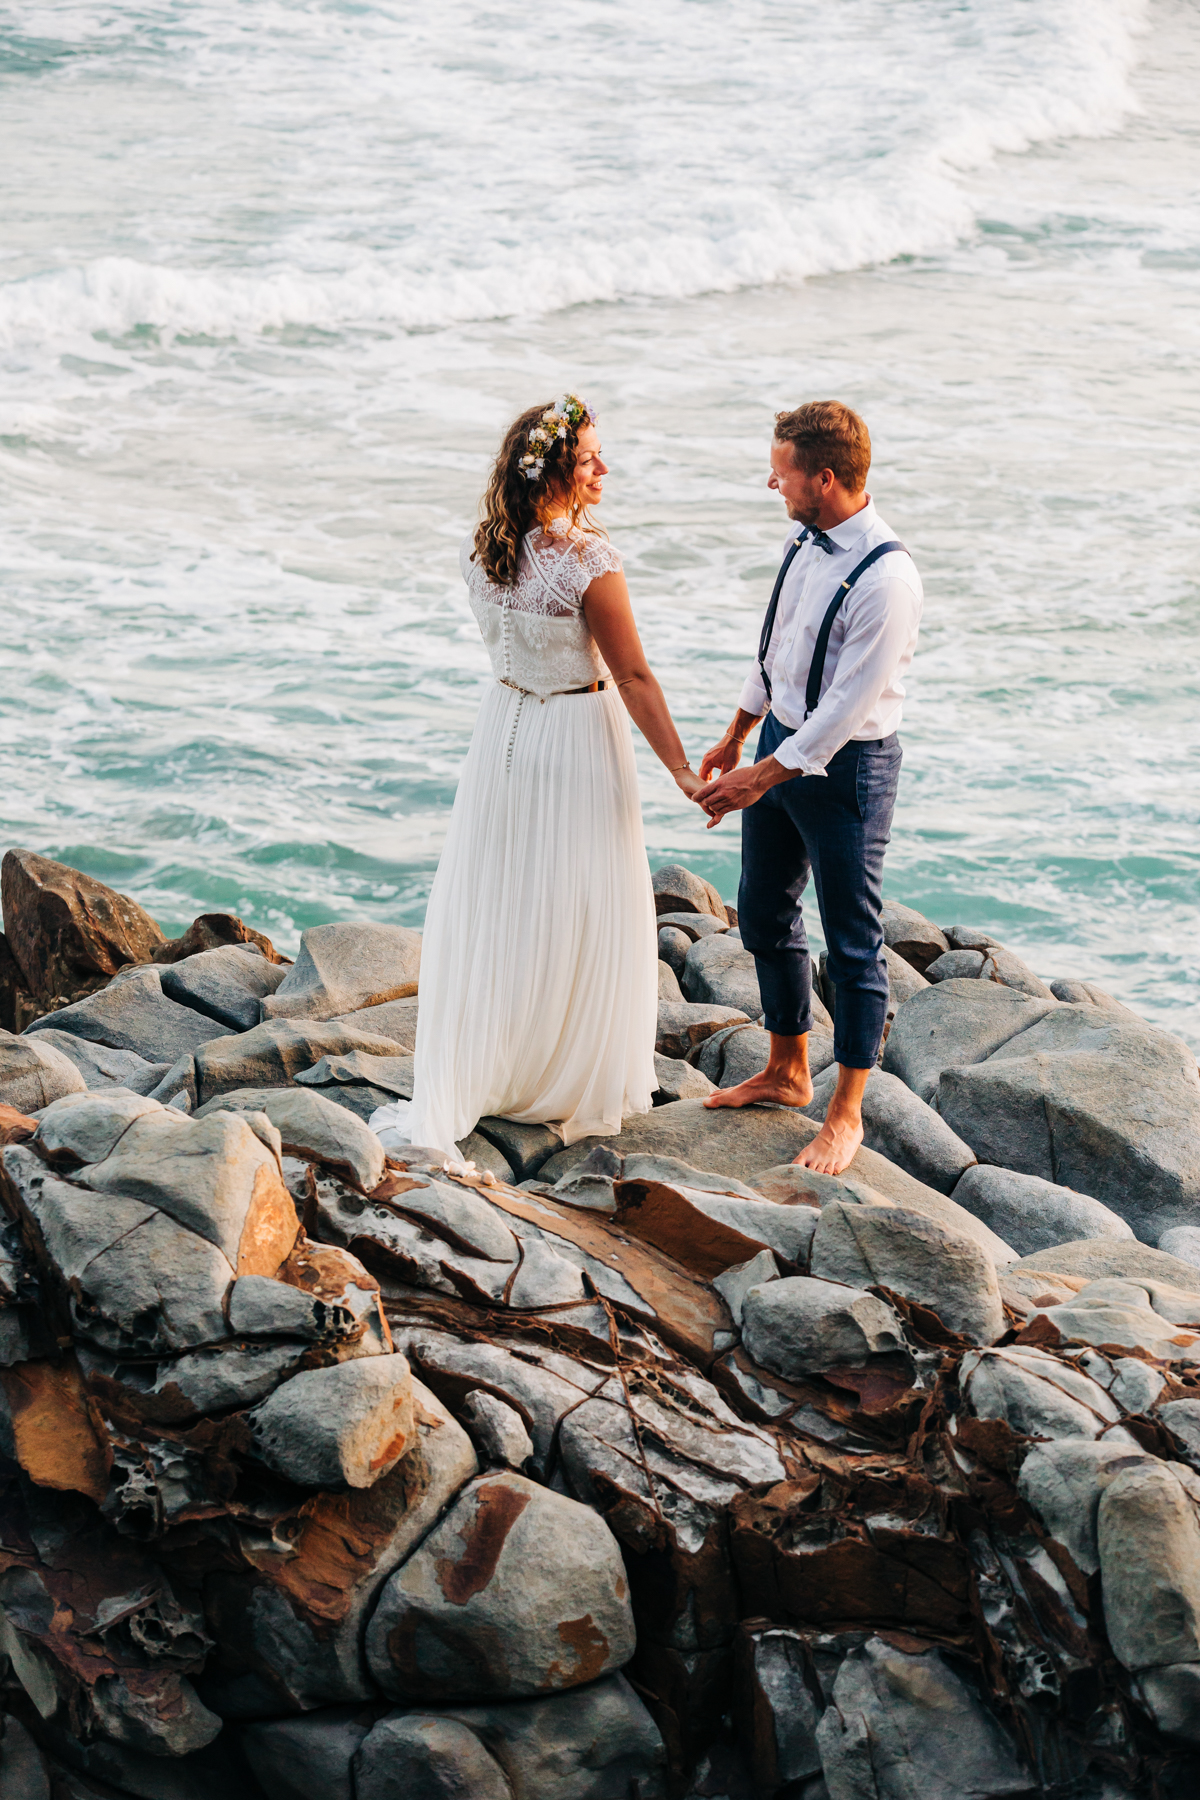 Sunshine-Beach-Wedding-Photographers-Lindy-Yewen 321.jpg